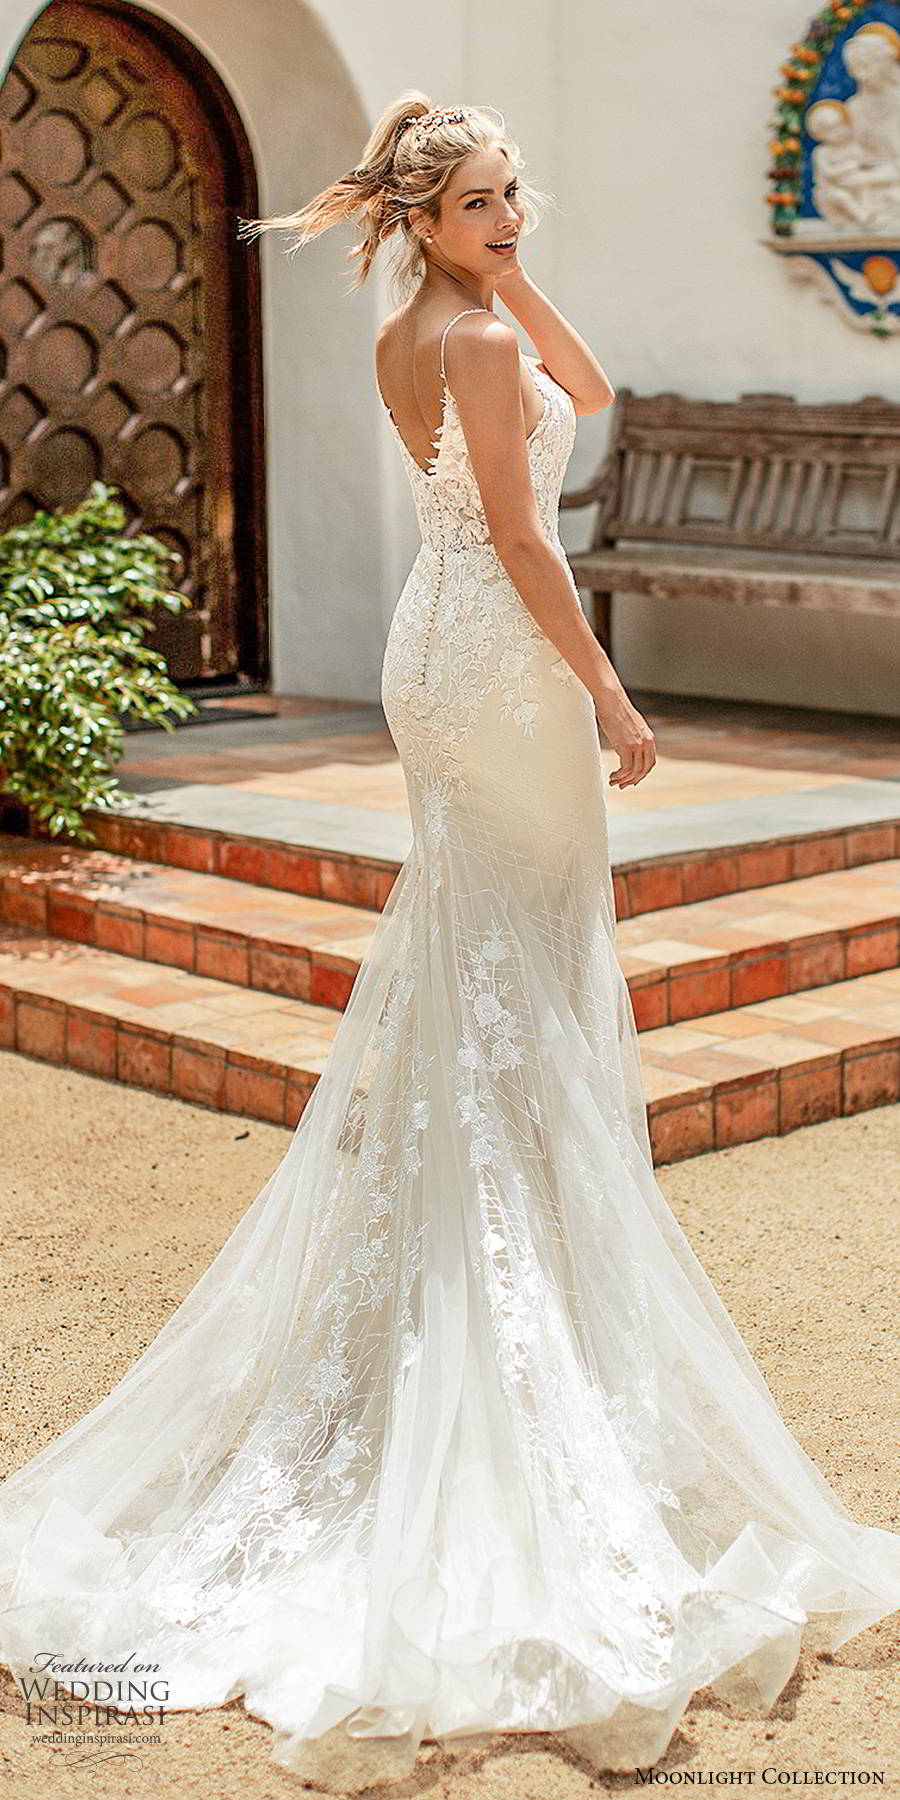 moonlight collection spring 2020 bridal sleeveless thin straps sweetheart neckline embellished bodice elegant romantic sheath mermaid wedding dress scoop back chapel train (5) bv